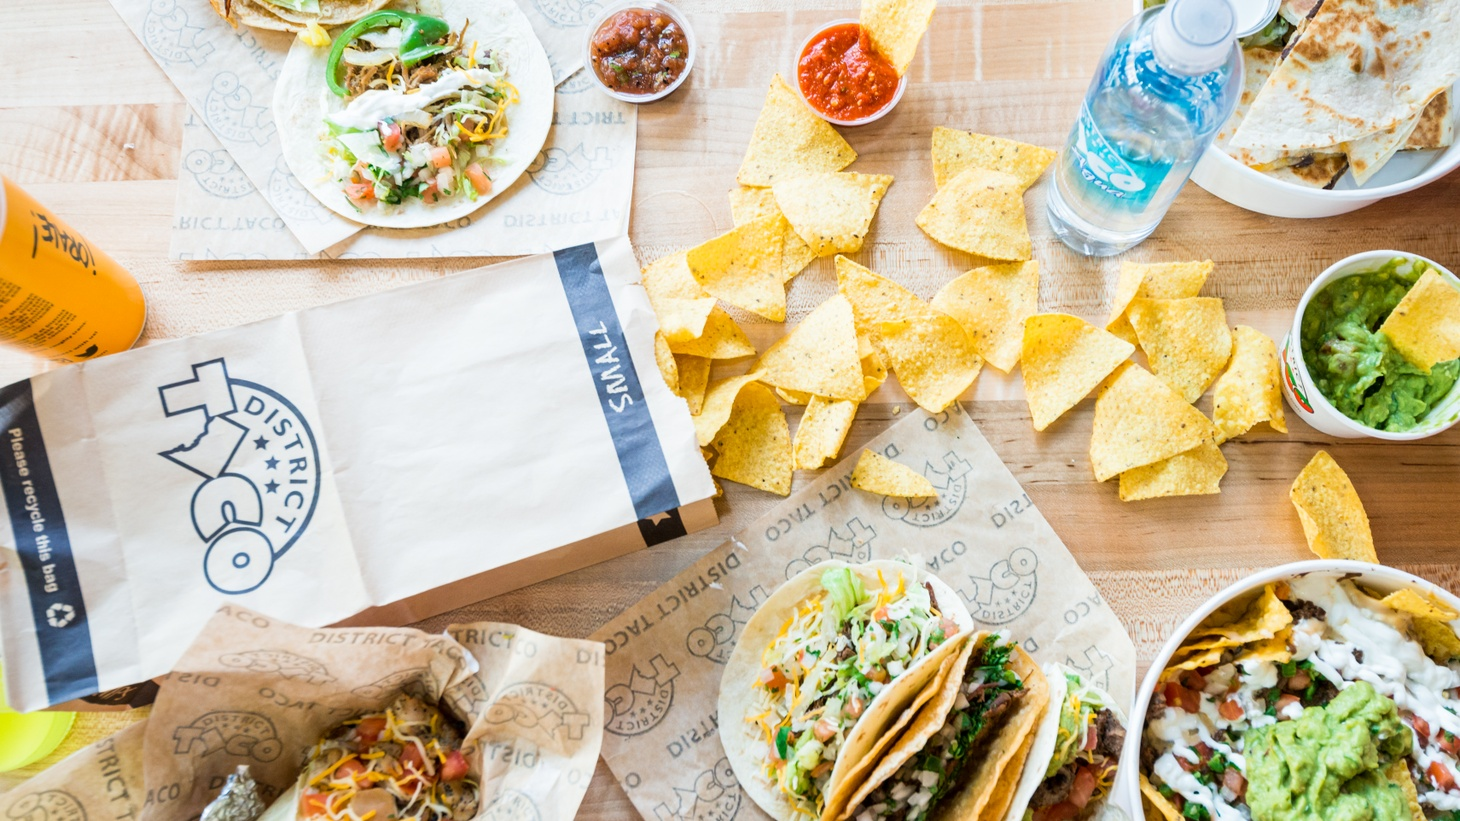 Tacos, burritos, quesadillas, chips and salsa for takeout from District Taco restaurant.